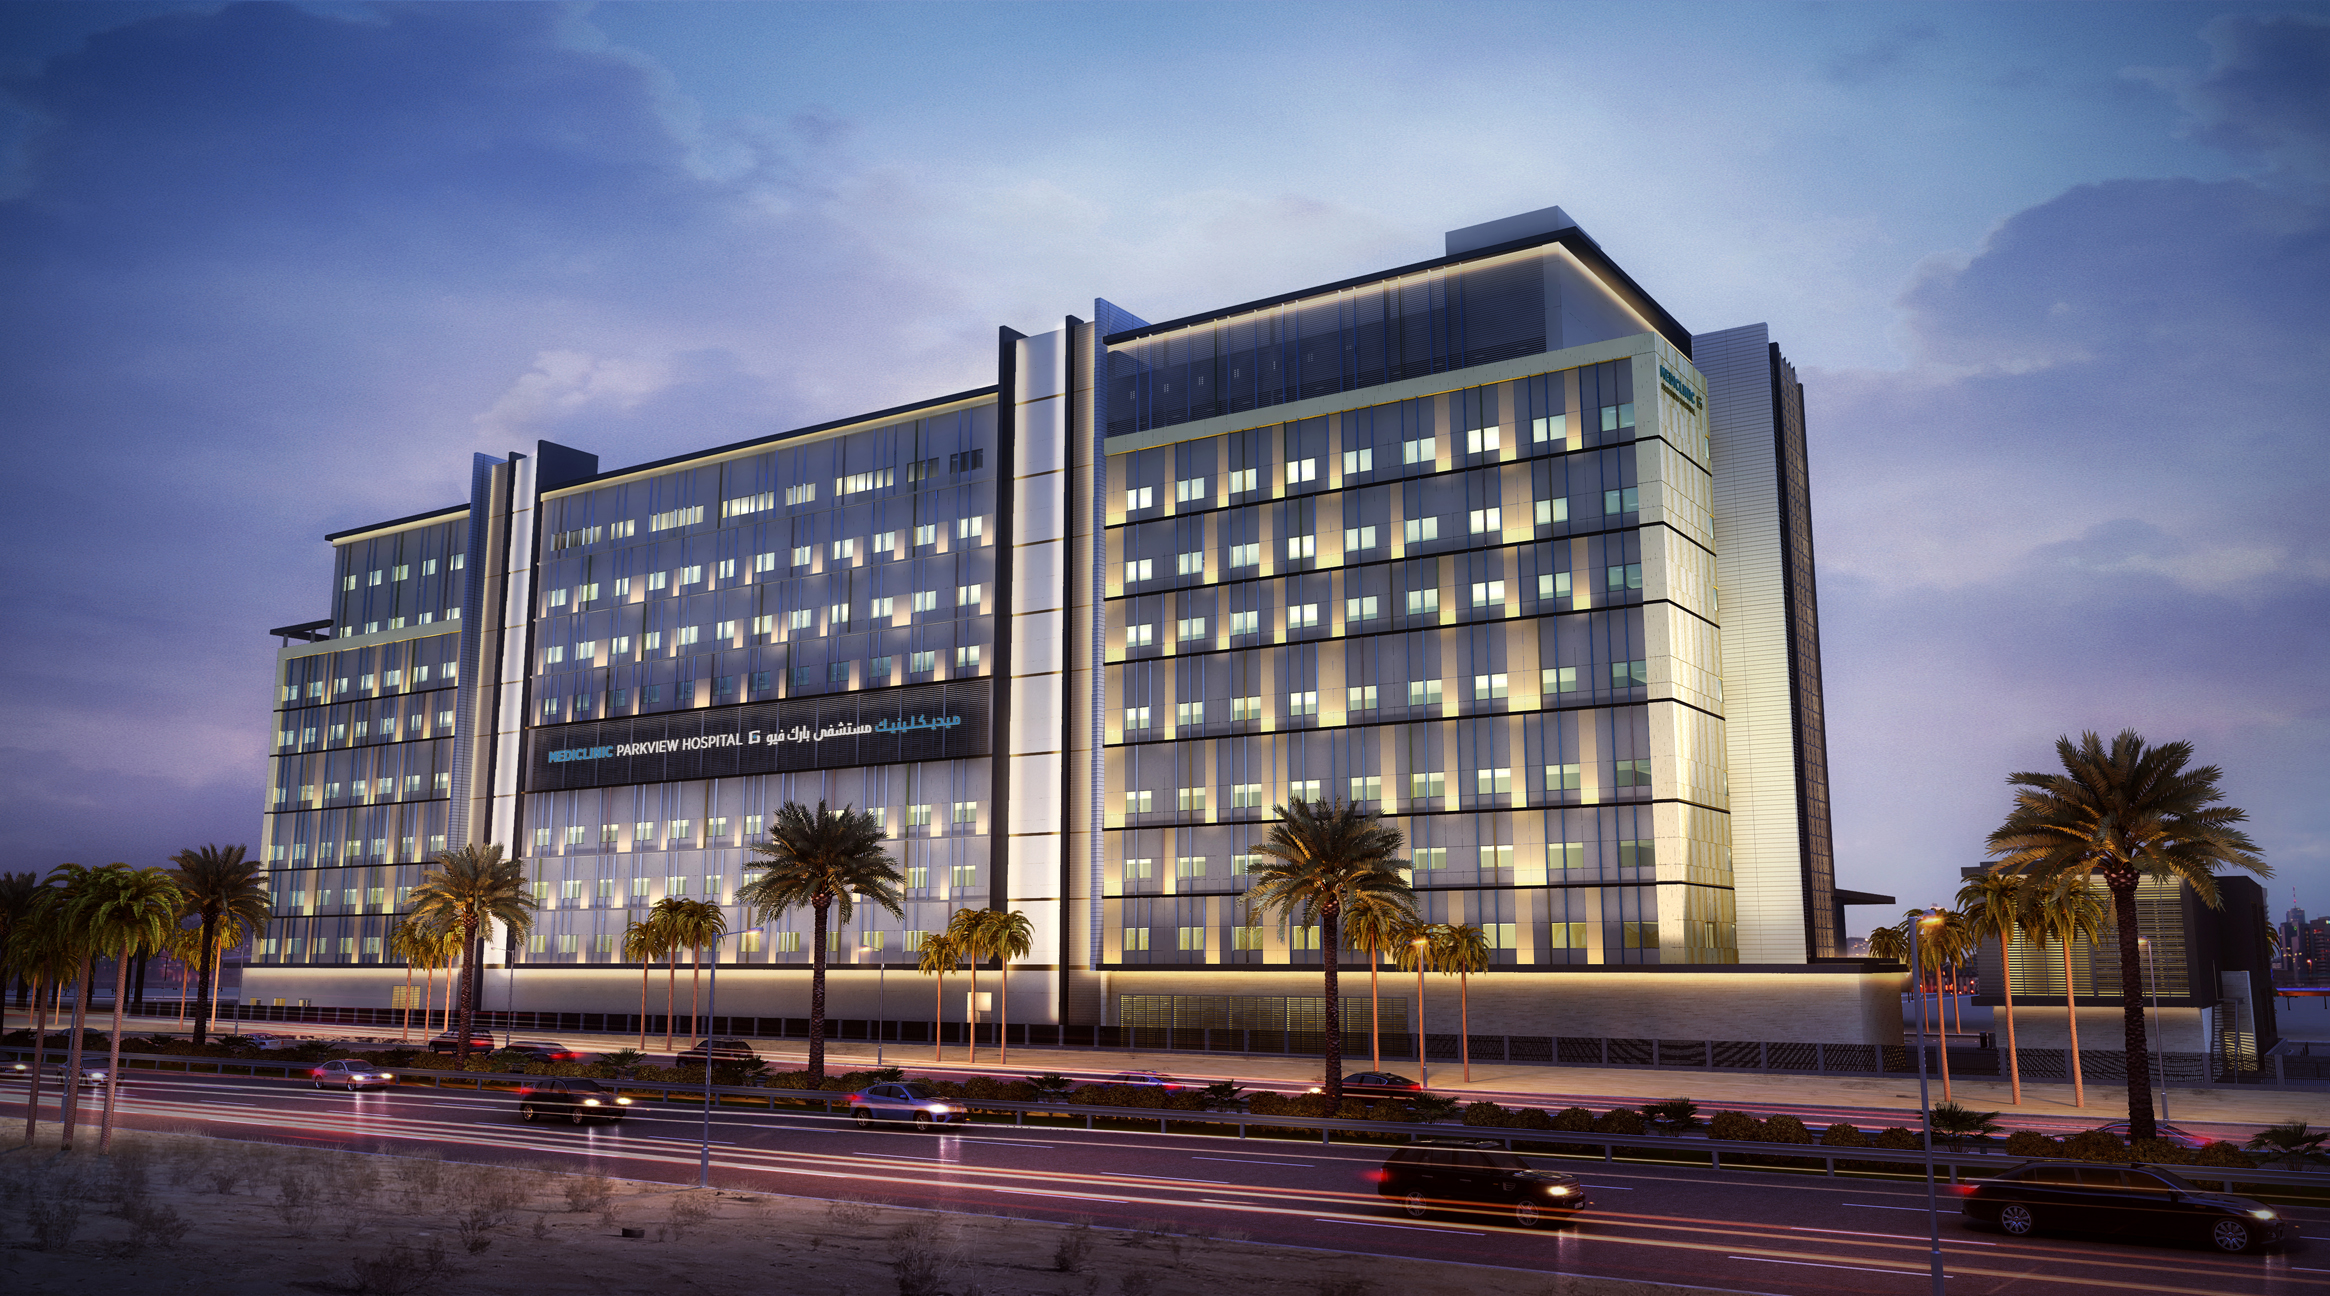 Mediclinic Parkview Hospital, Dubai, UAE